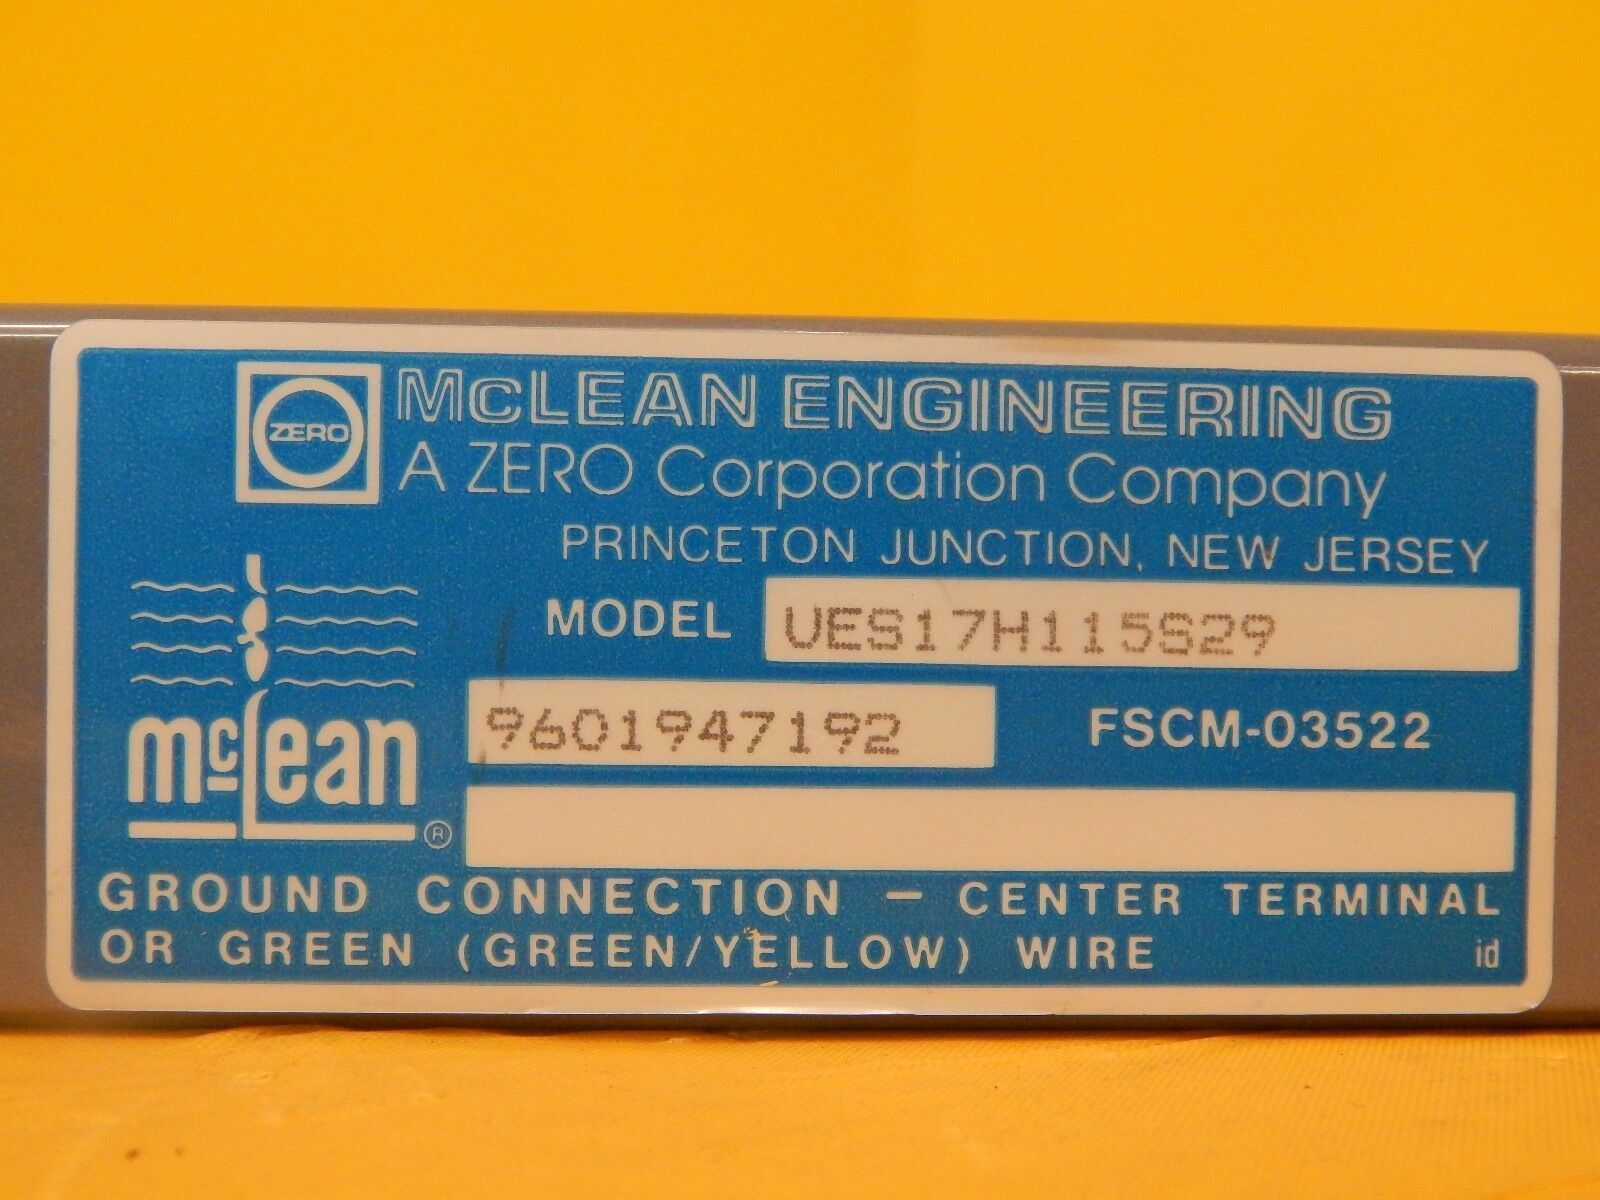 McLean Engineering UES17H115S29 Fantray AMAT 0190-70066 P5000 Used Working